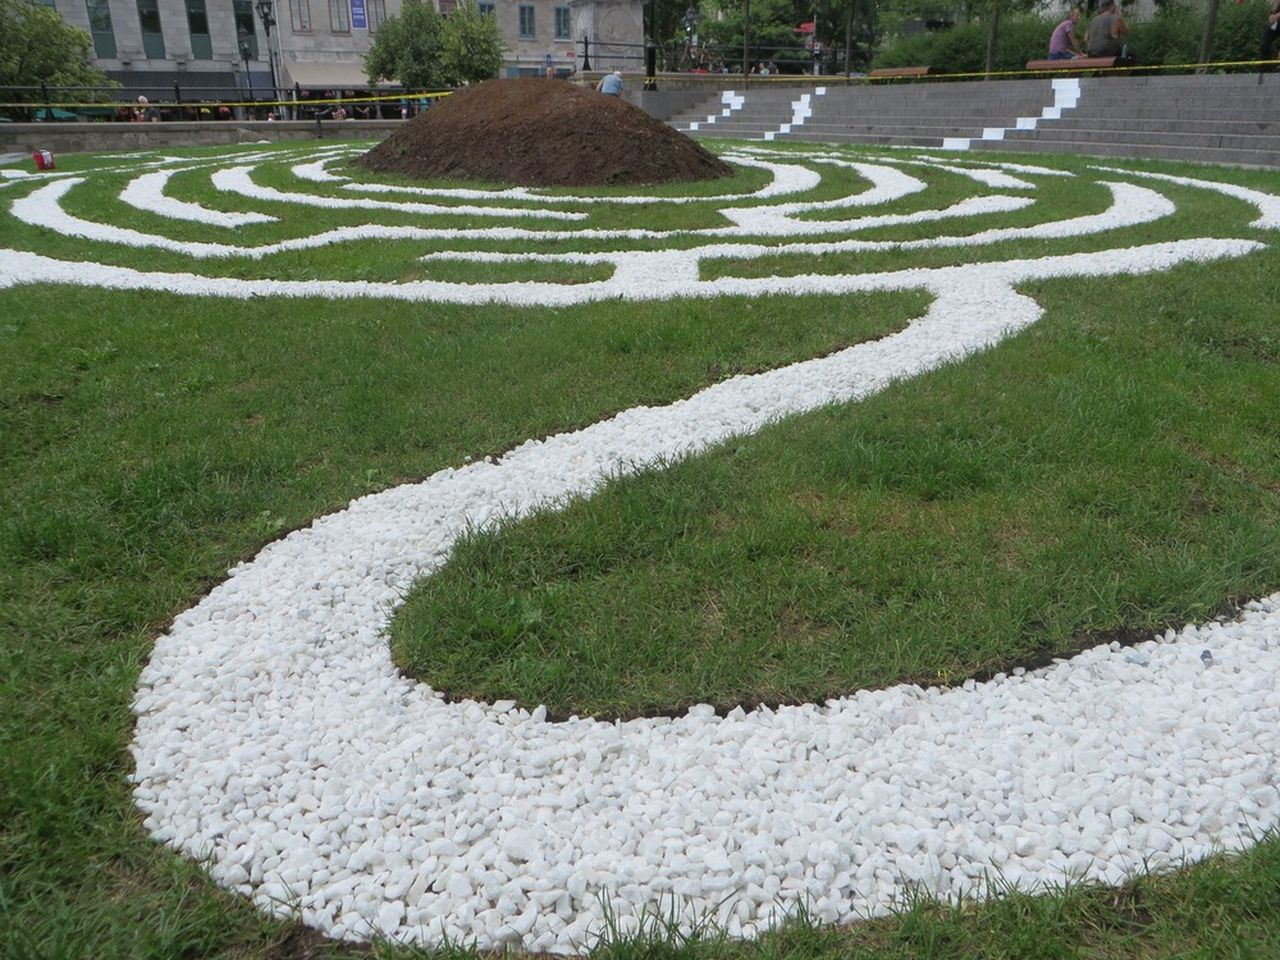 Traces – First Waterways by William Vazan, Montreal (Quebec) Canada. The 2017 edition of Métis-sur-Montréal, presented at Place De La Dauversière, located between Château Ramezay and Place Jacques-Cartier, in front of Montréal City Hall : Photo credit © Château Ramezay – Musée et site historique de Montréal, photo © Michel Pinault